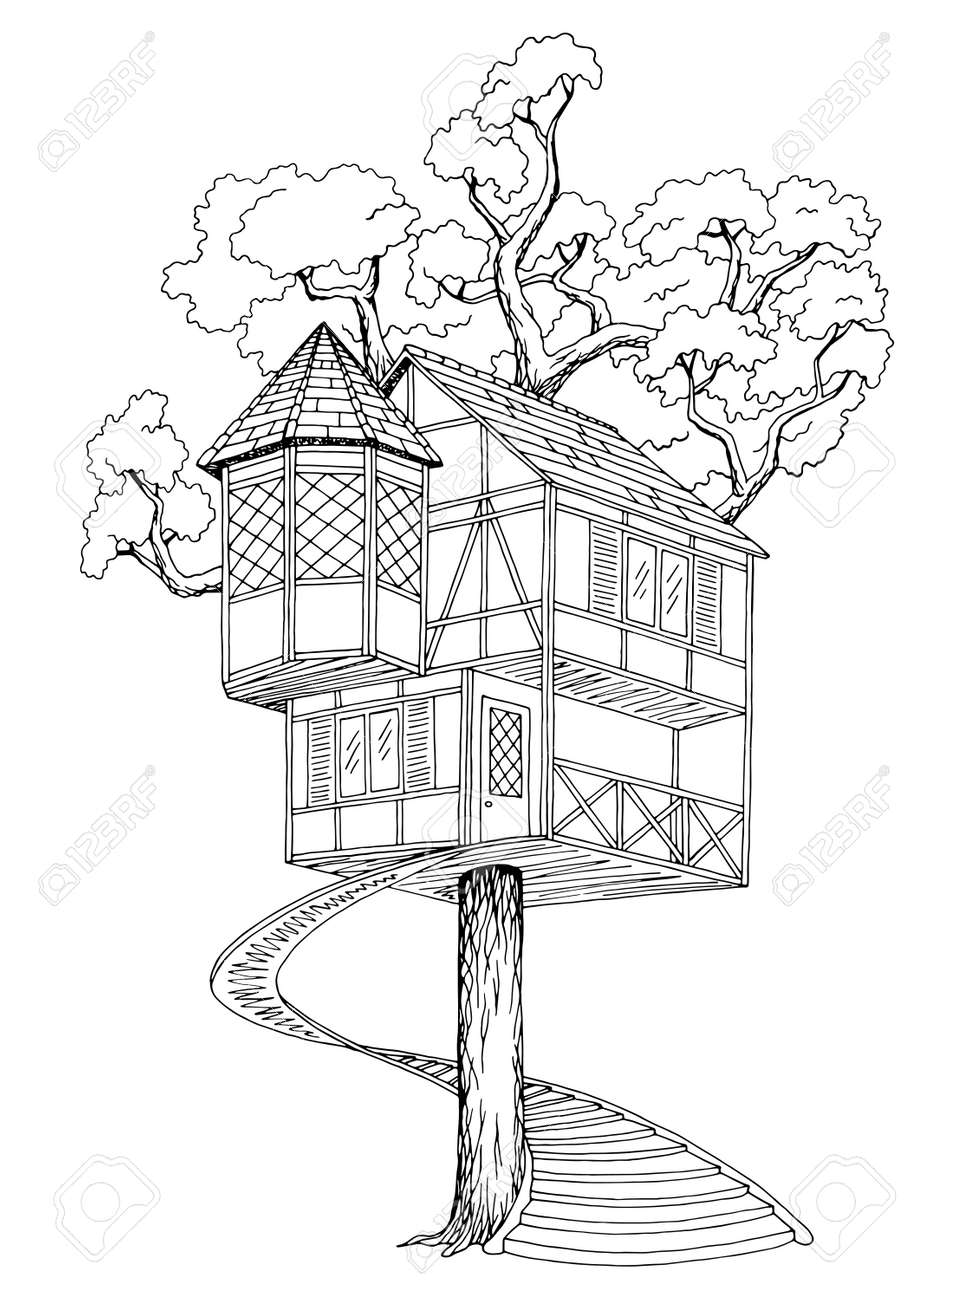 treehouse art black and white www topsimages com rh topsimages com And White Black Older Scissorcs Argument Black and White